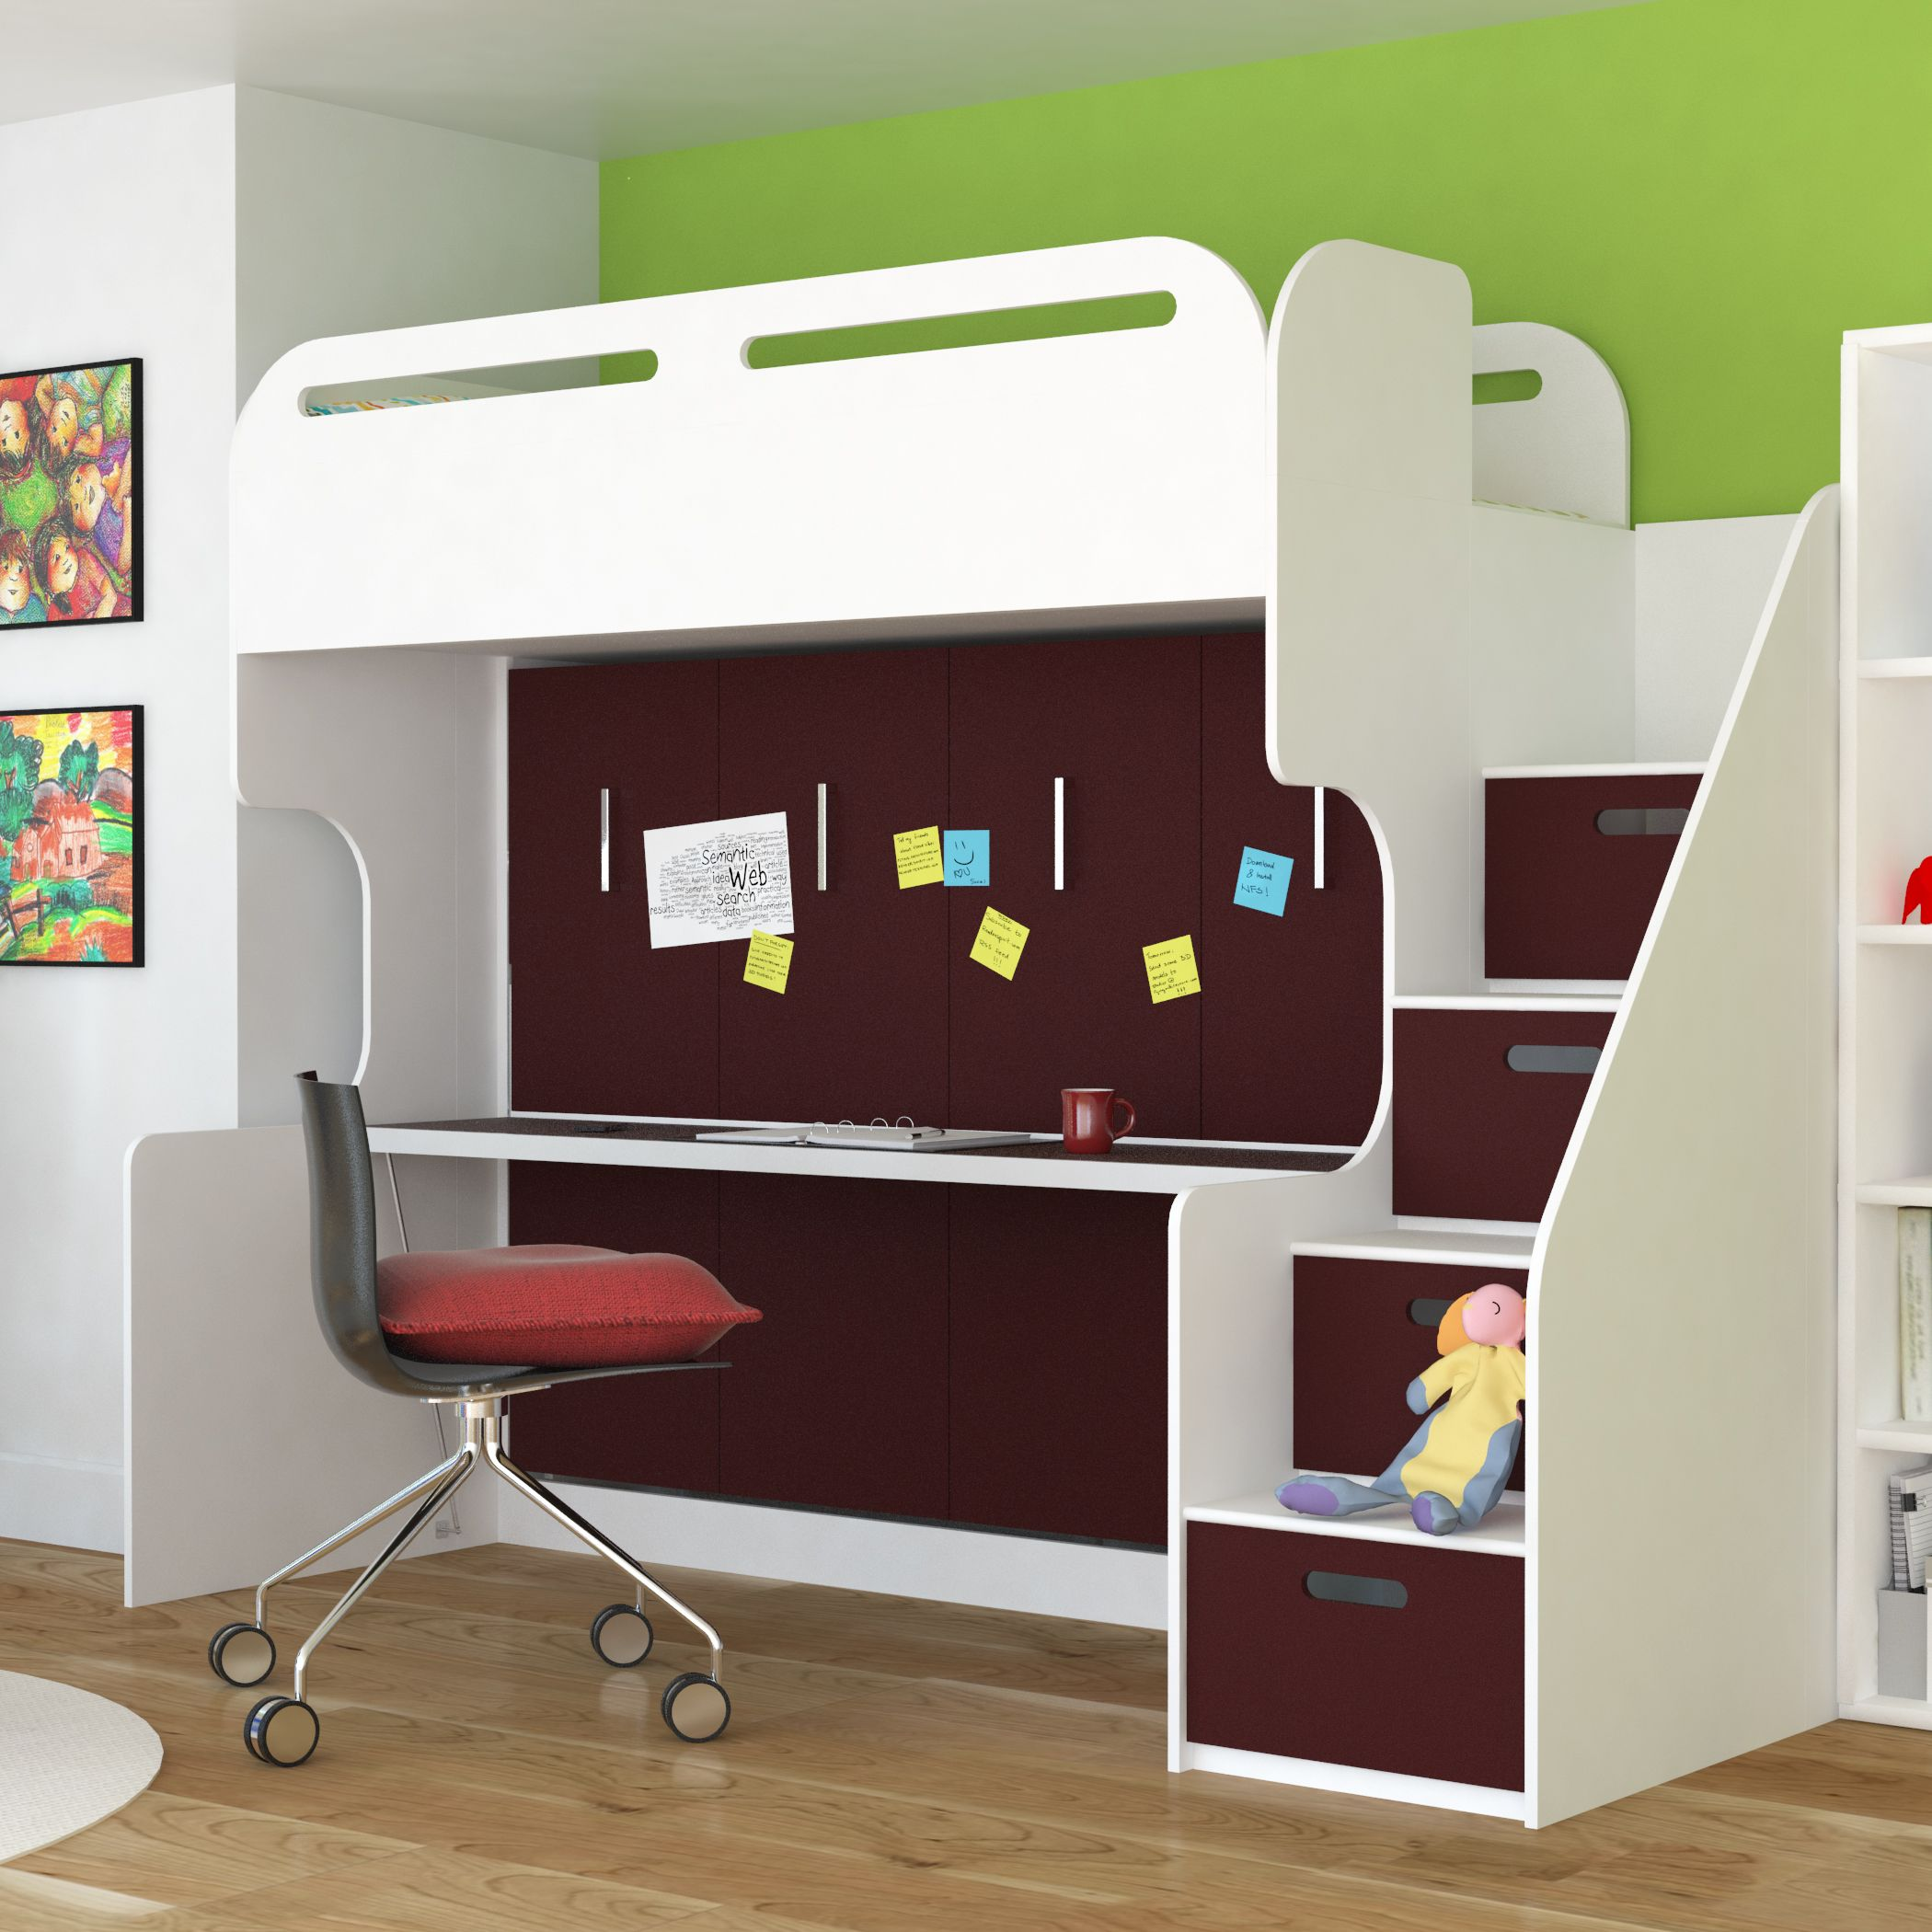 Abner Bunk Bed With Wall And Desk Burgandy Urban